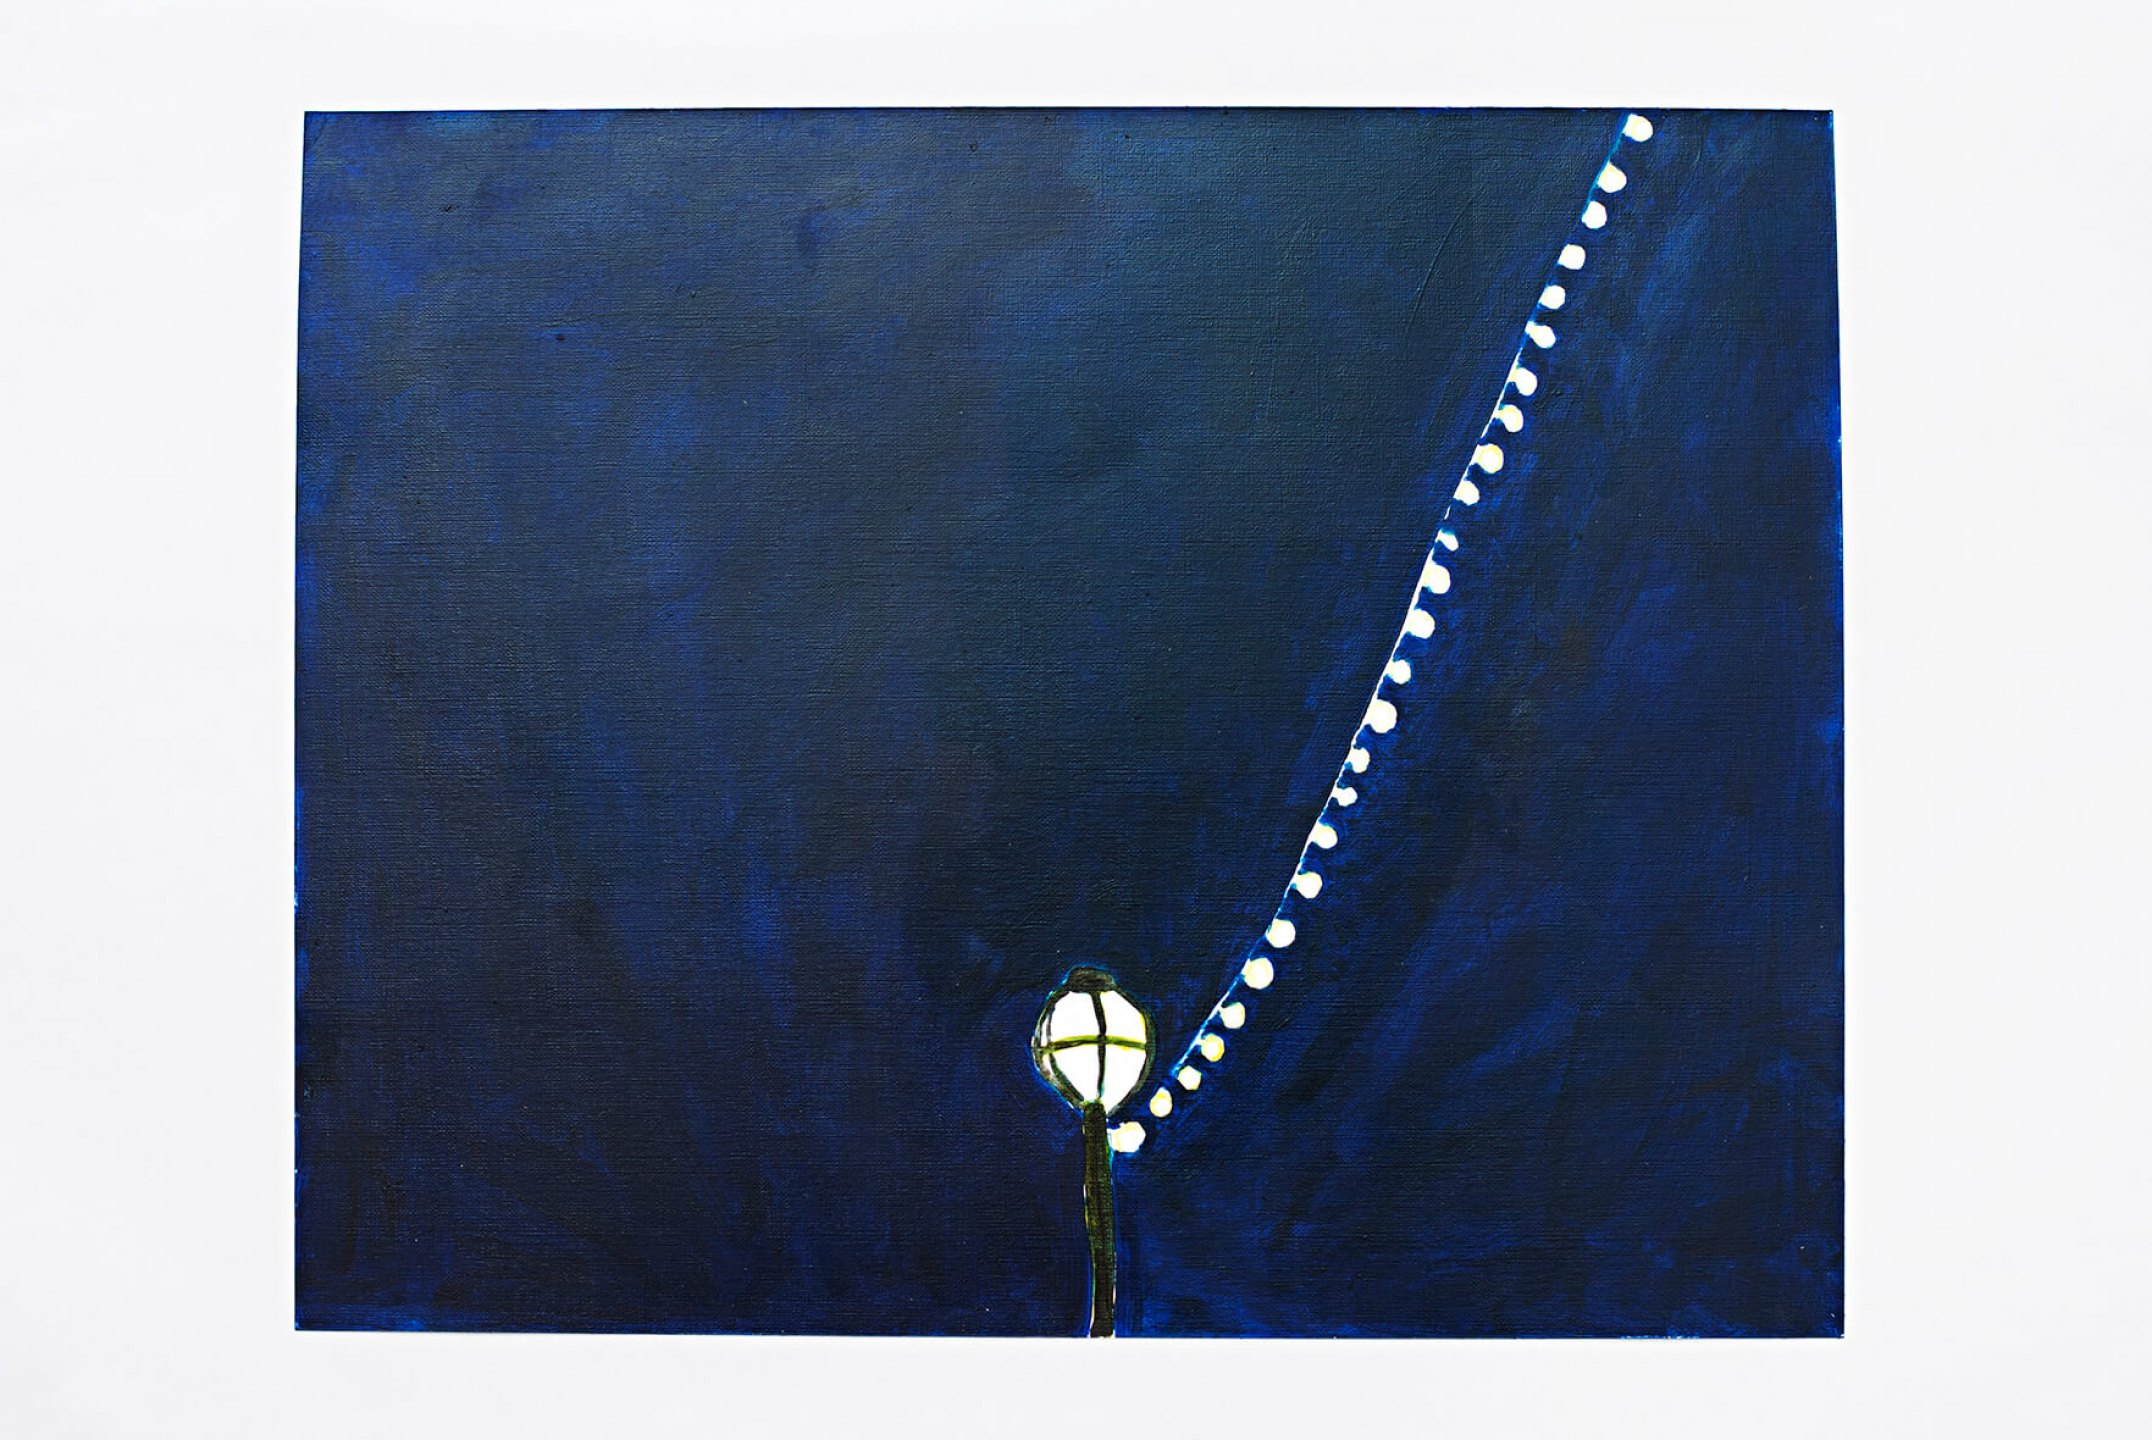 Patricia Leite, <em>Lamppost,</em> 2013, oil on paper, 33 × 41 cm - Mendes Wood DM